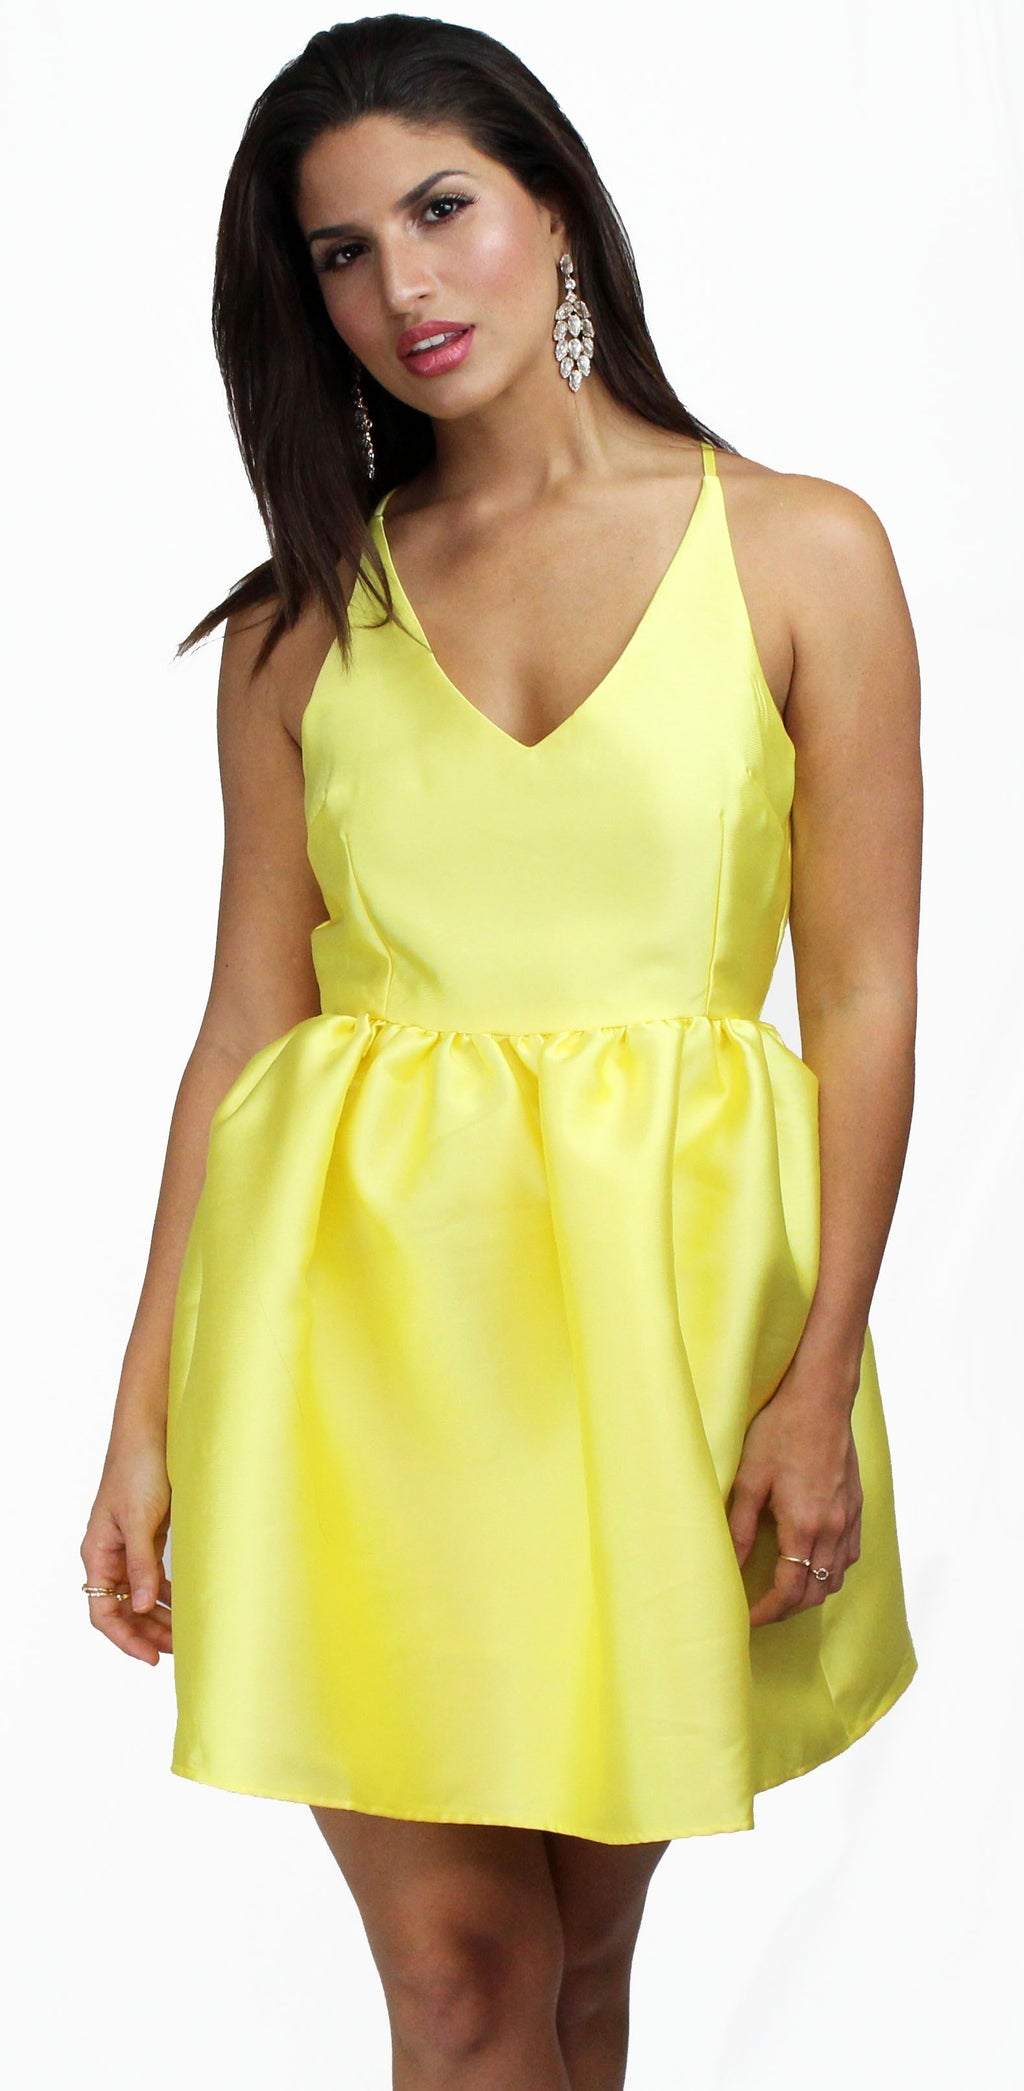 Sunny Days Ahead Yellow Satin Fit & Flare Dress